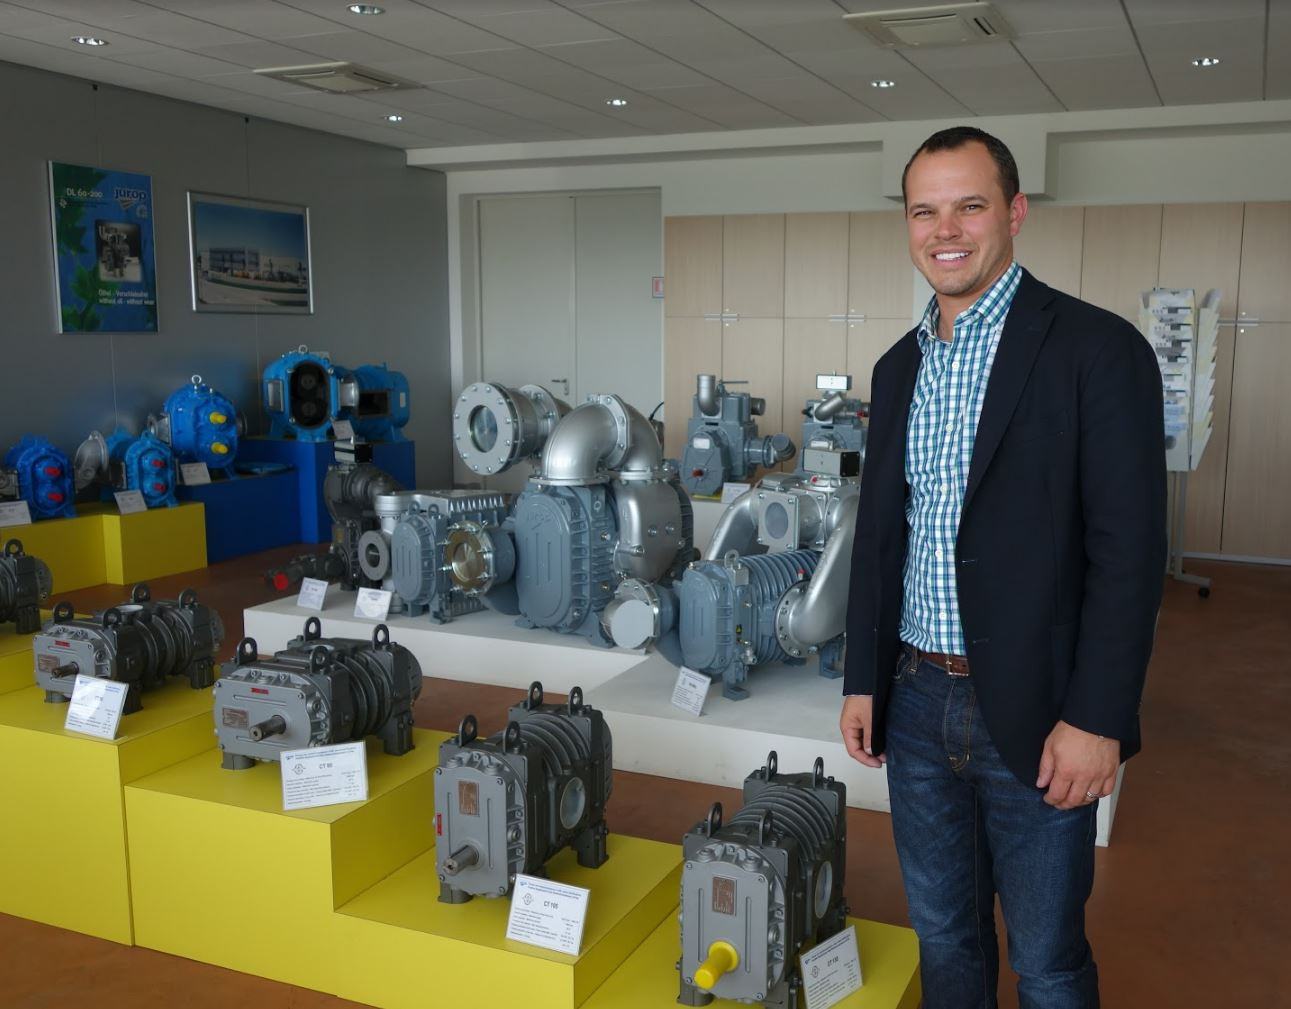 CEO, Chris Chandler at Jurop facility in Italy.